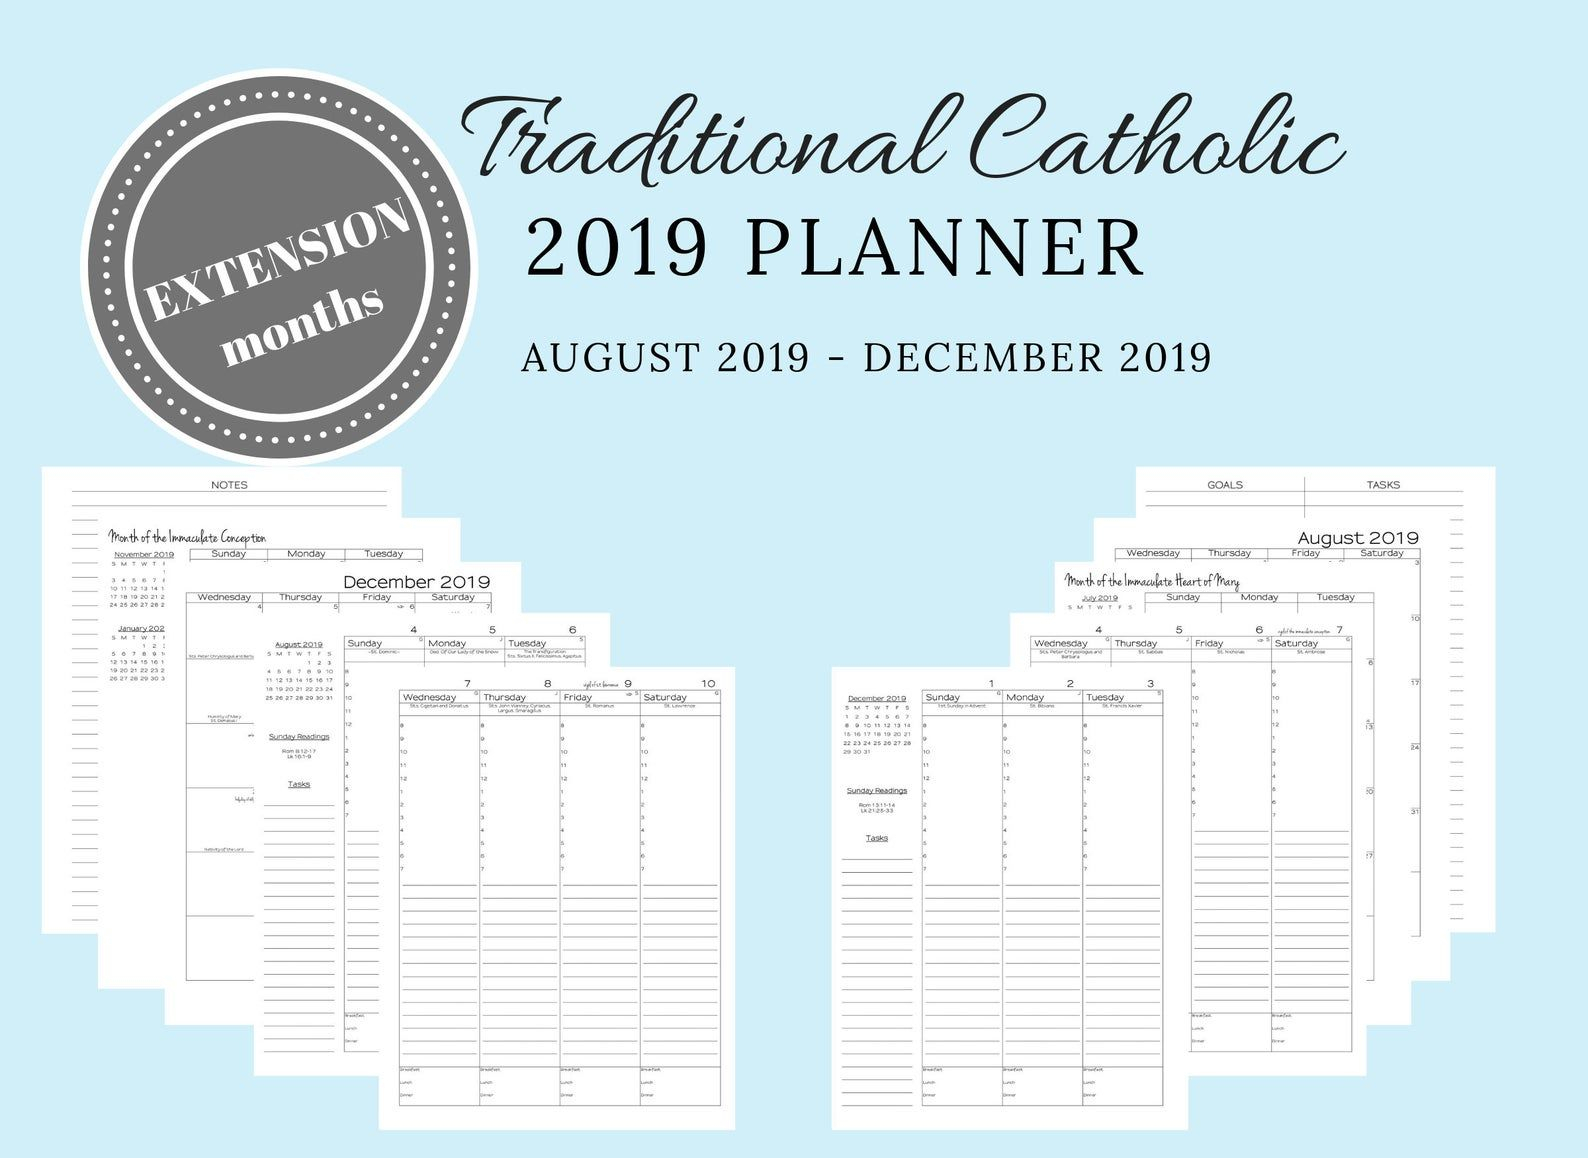 2019 Traditional Latin Catholic Planner Printable Extension in Catholic Extension Calendar